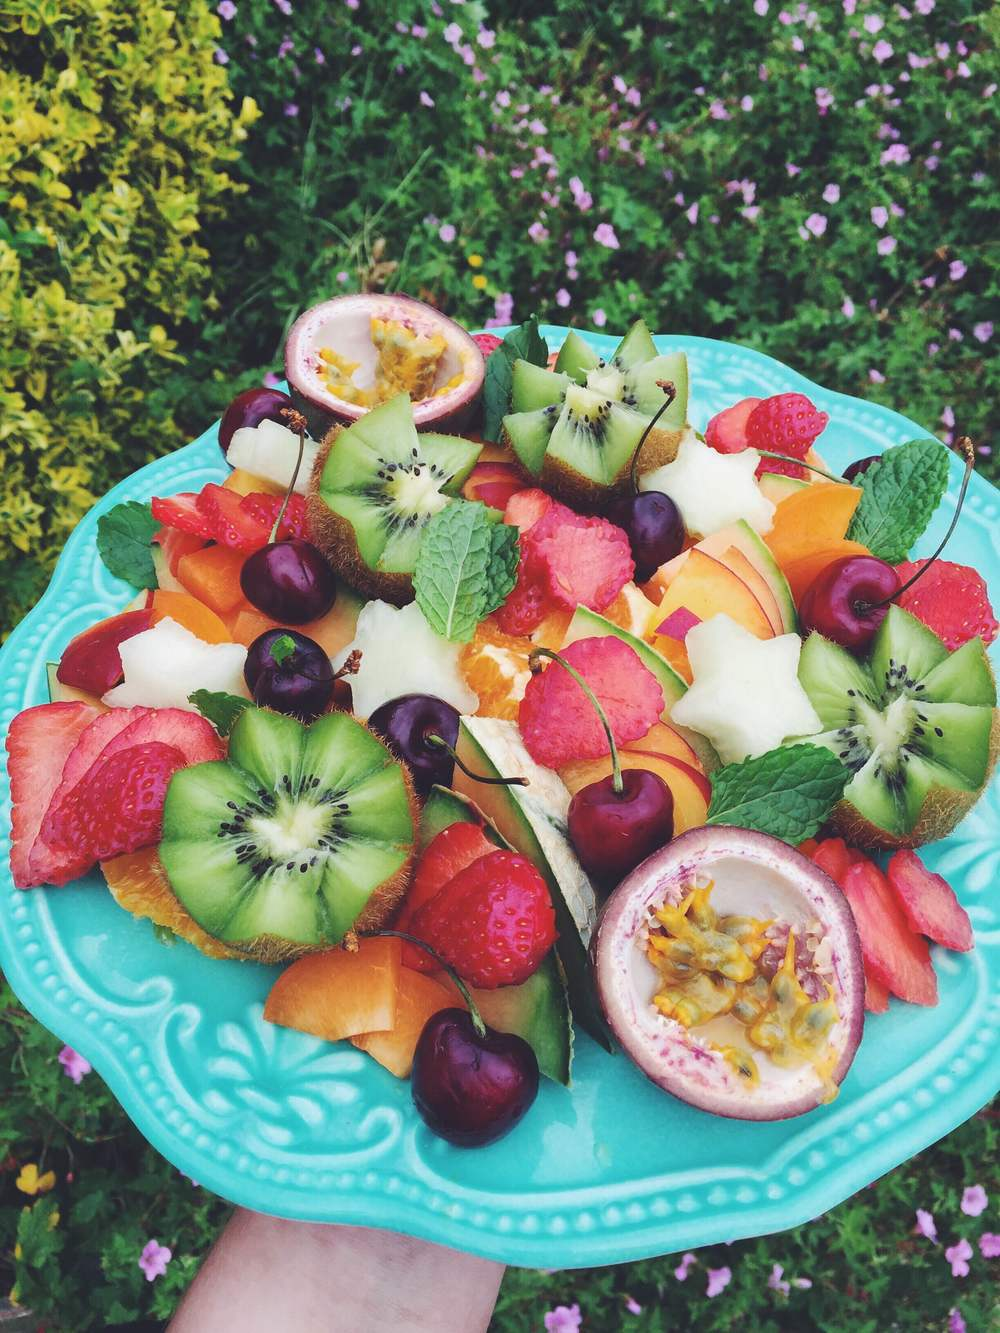 Fruit platters for breakfast < 3